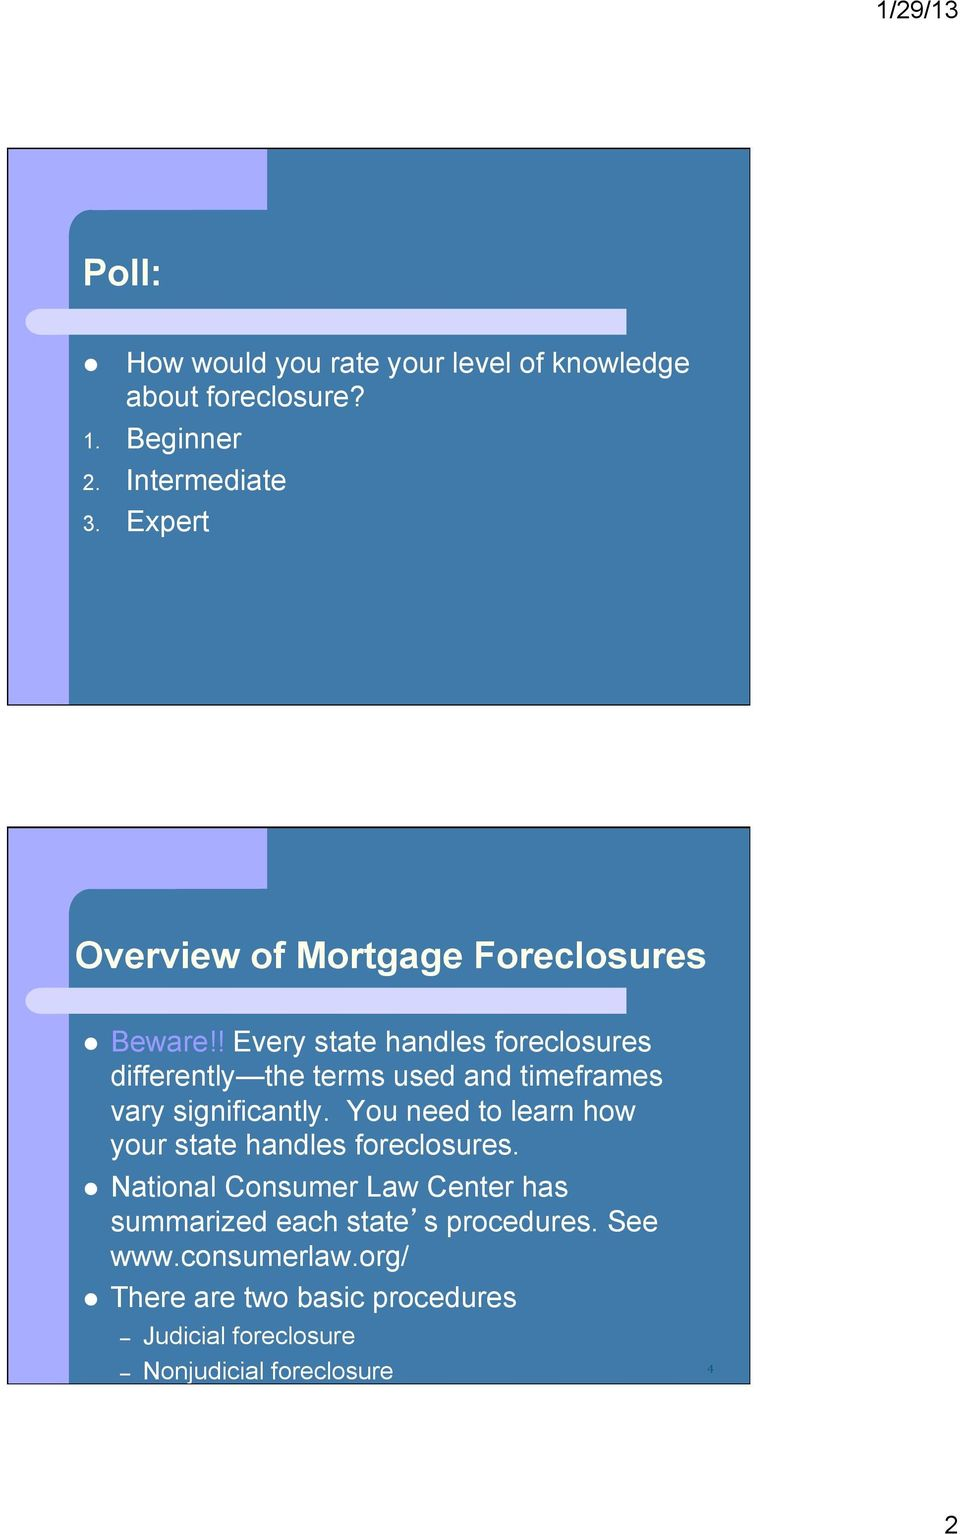 ! Every state handles foreclosures differently the terms used and timeframes vary significantly.